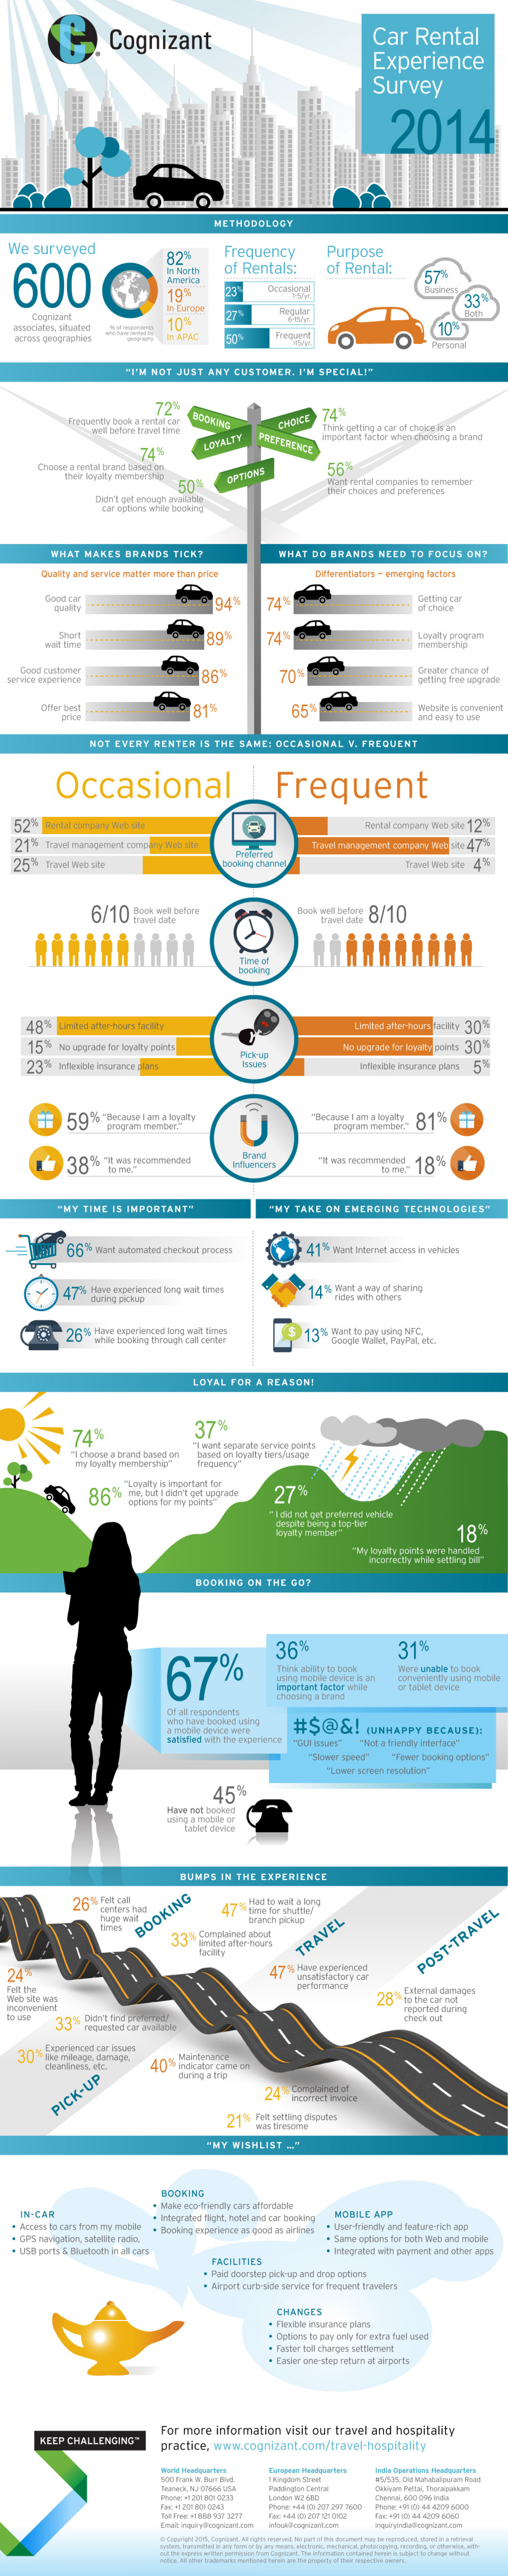 Car Rental Experience Survey  Infographic